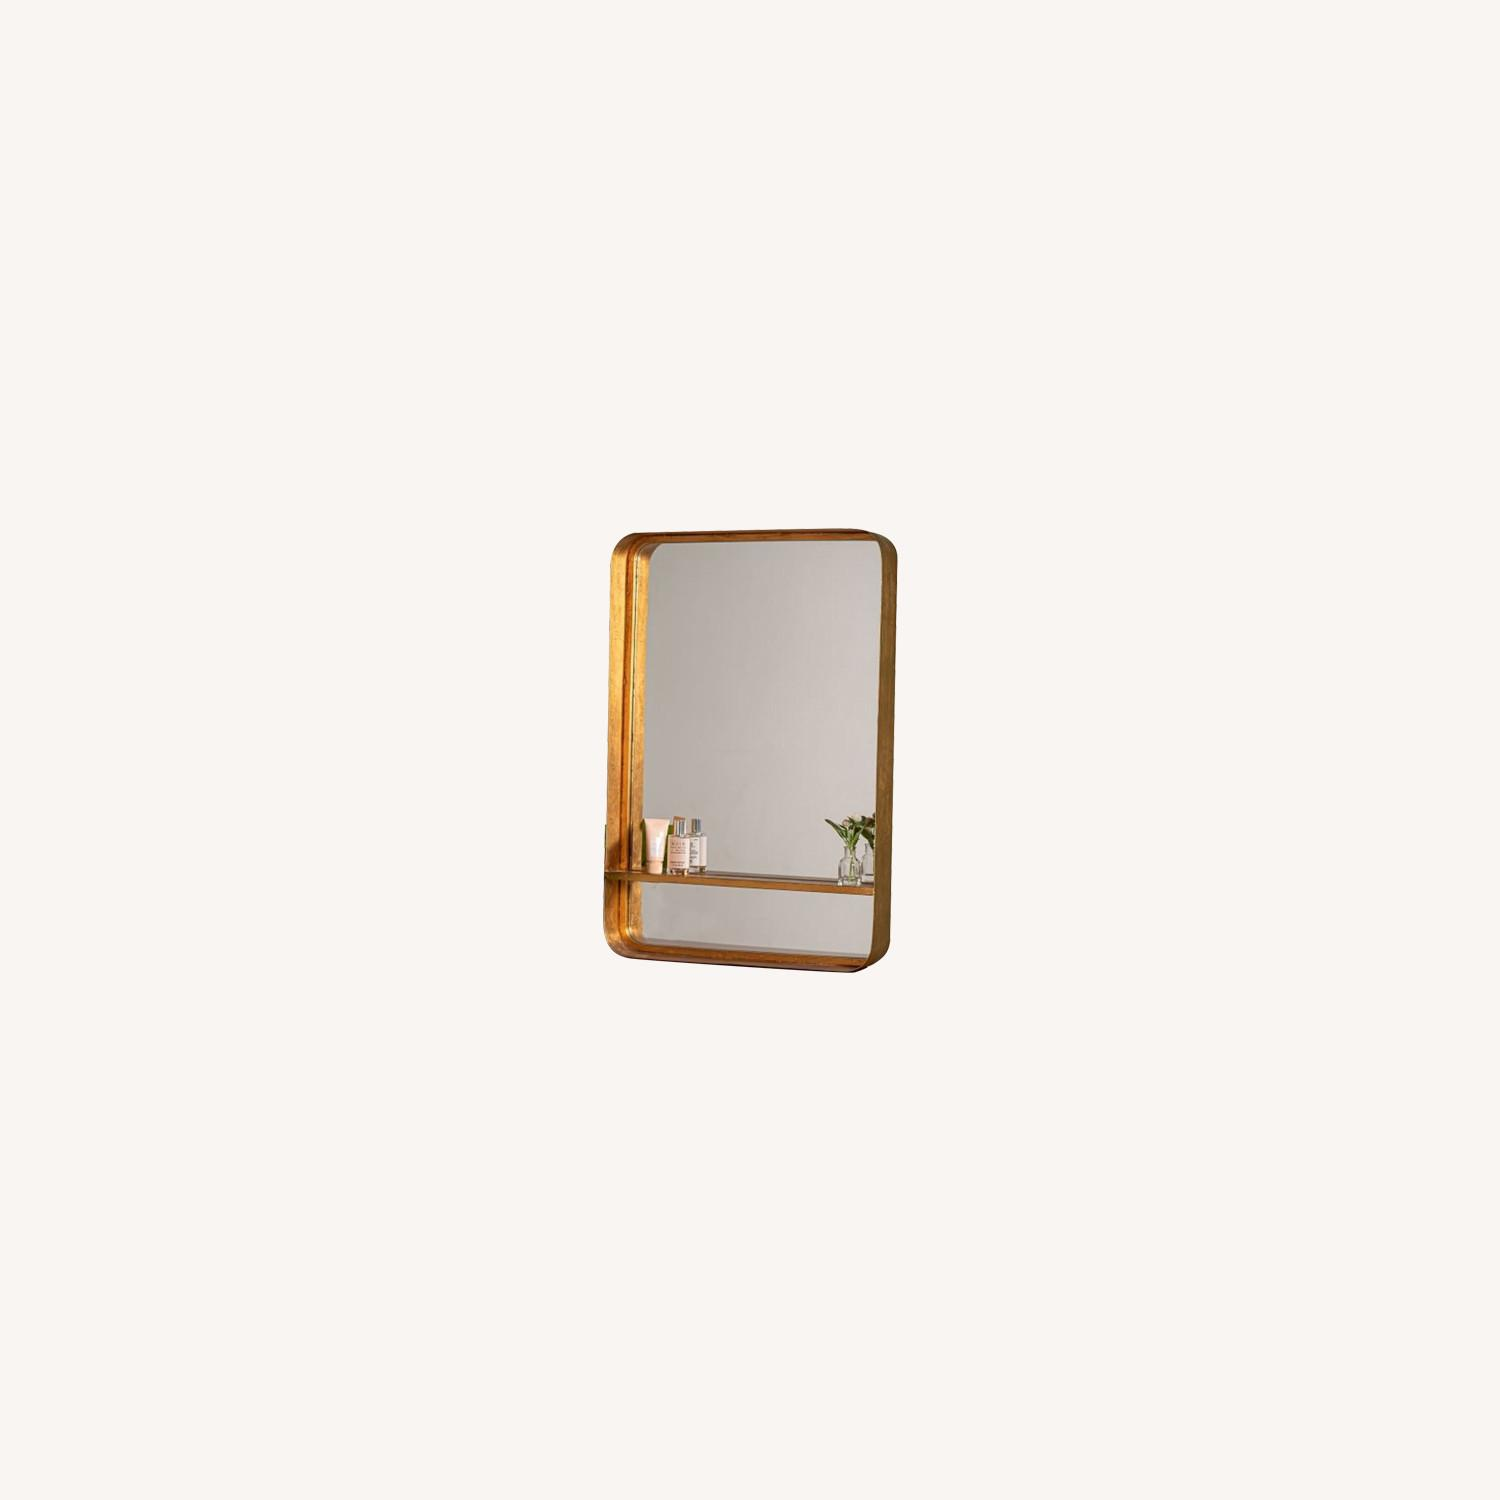 West Elm Gold Mirror with Shelf - image-0